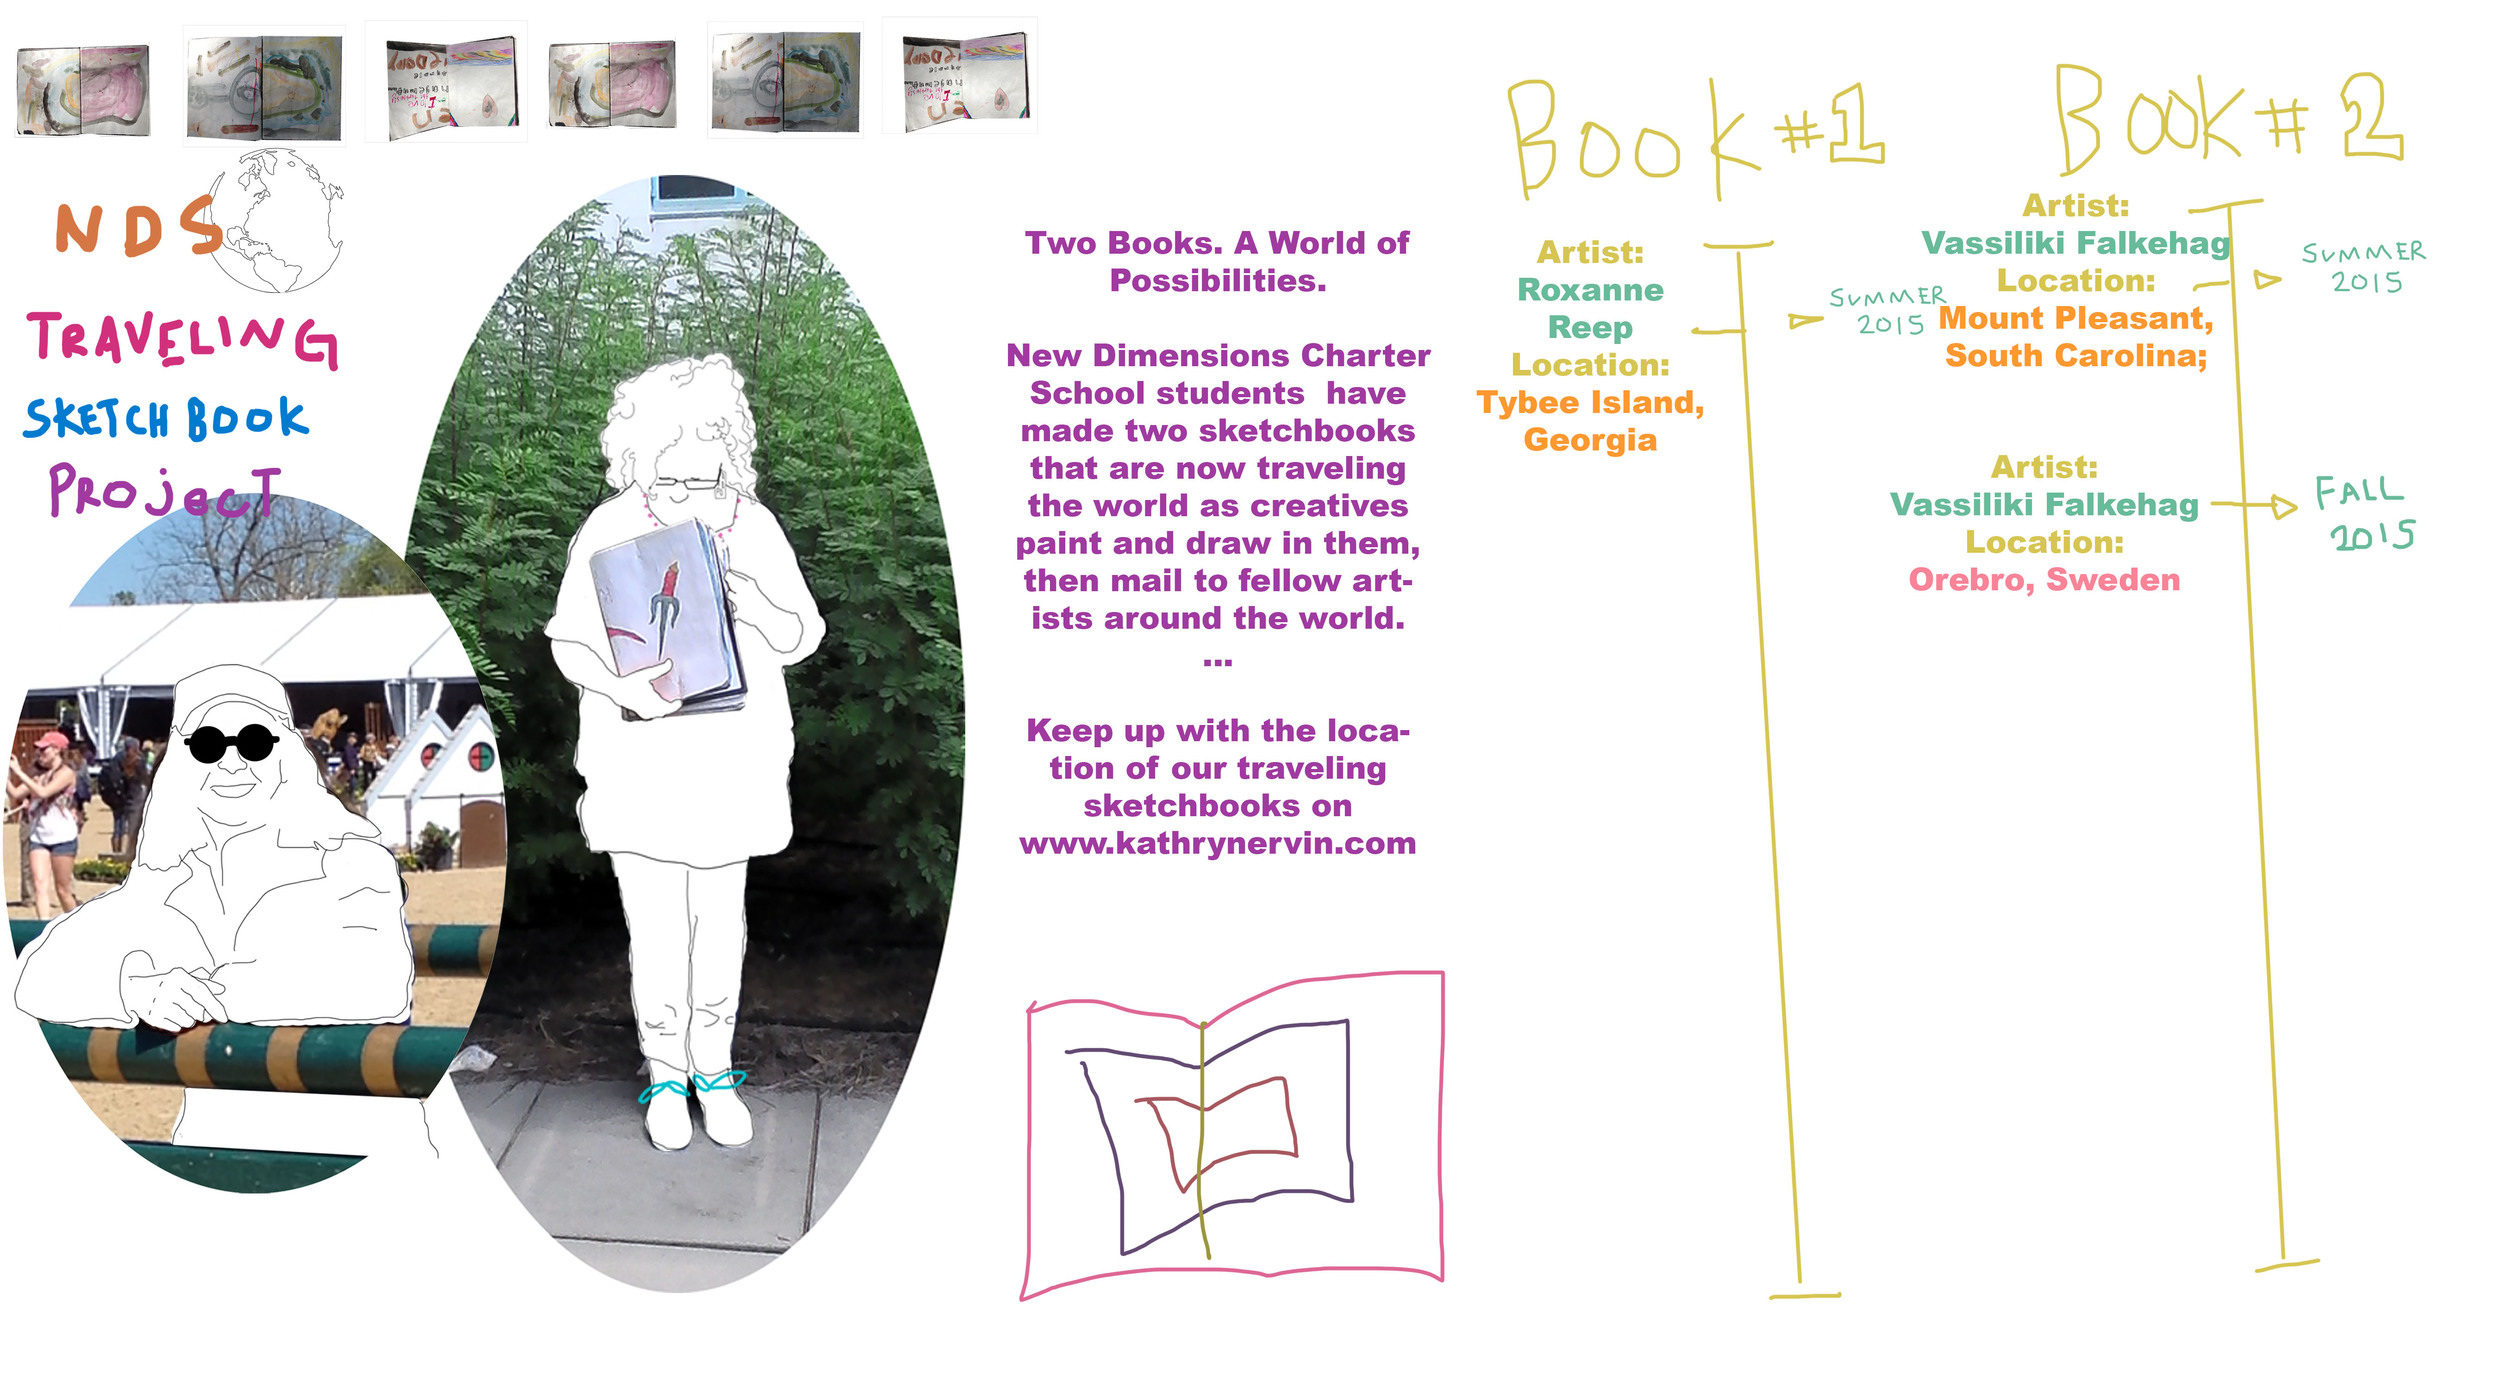 travel book project.jpg